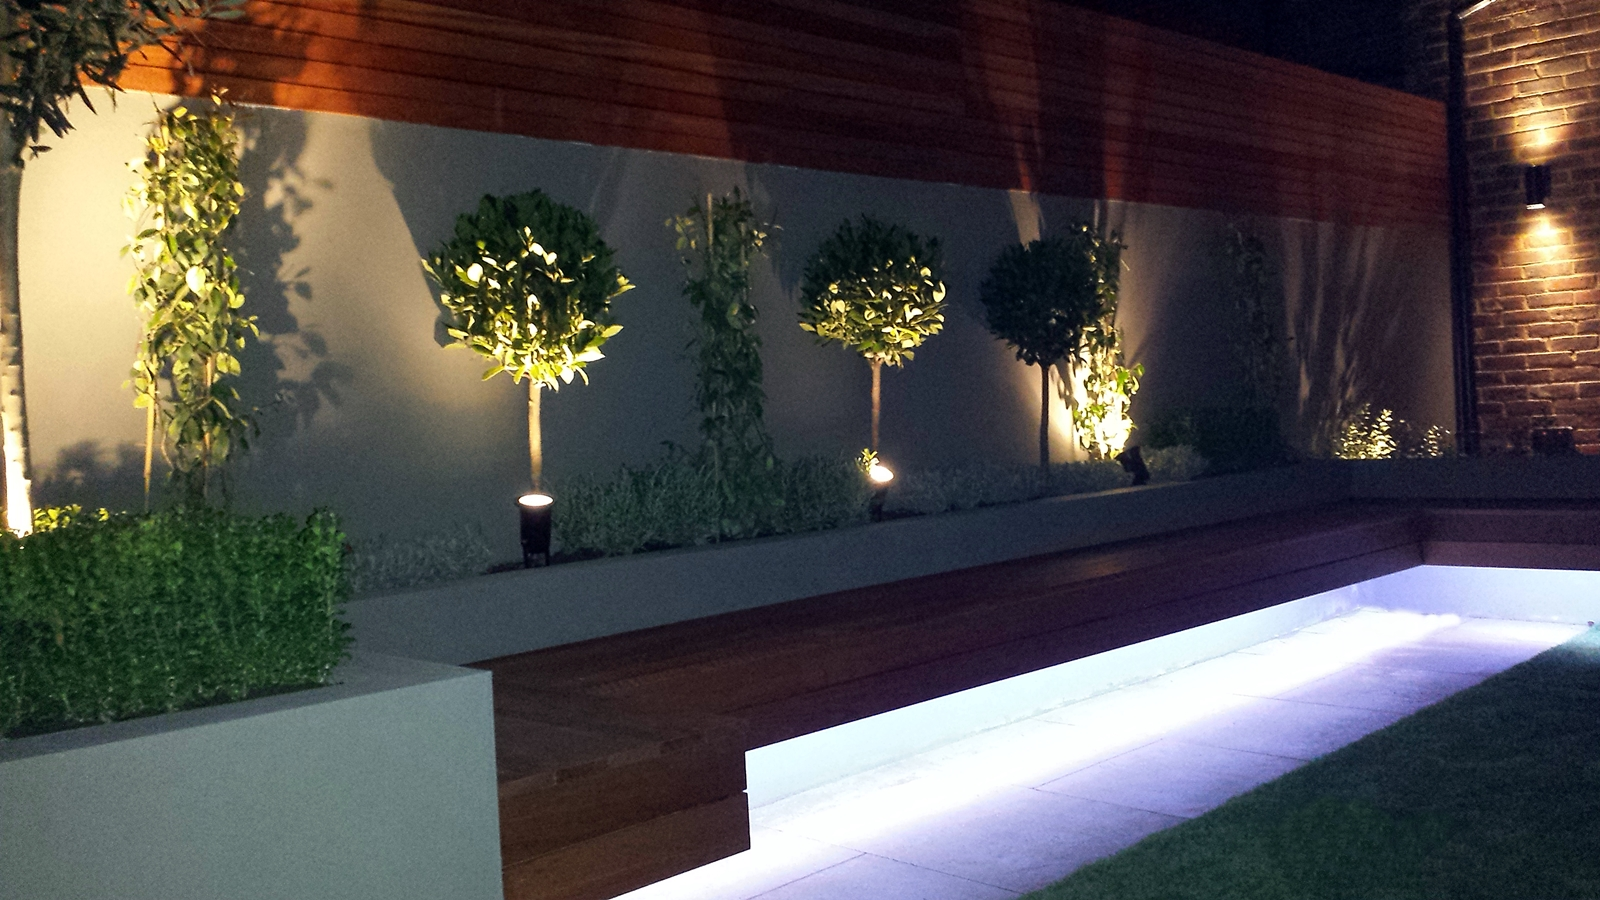 Modern garden design ideas great lighting fireplace hardwood screen plastered rendered walls clapham battersea  south west london LED strip lights landscaping